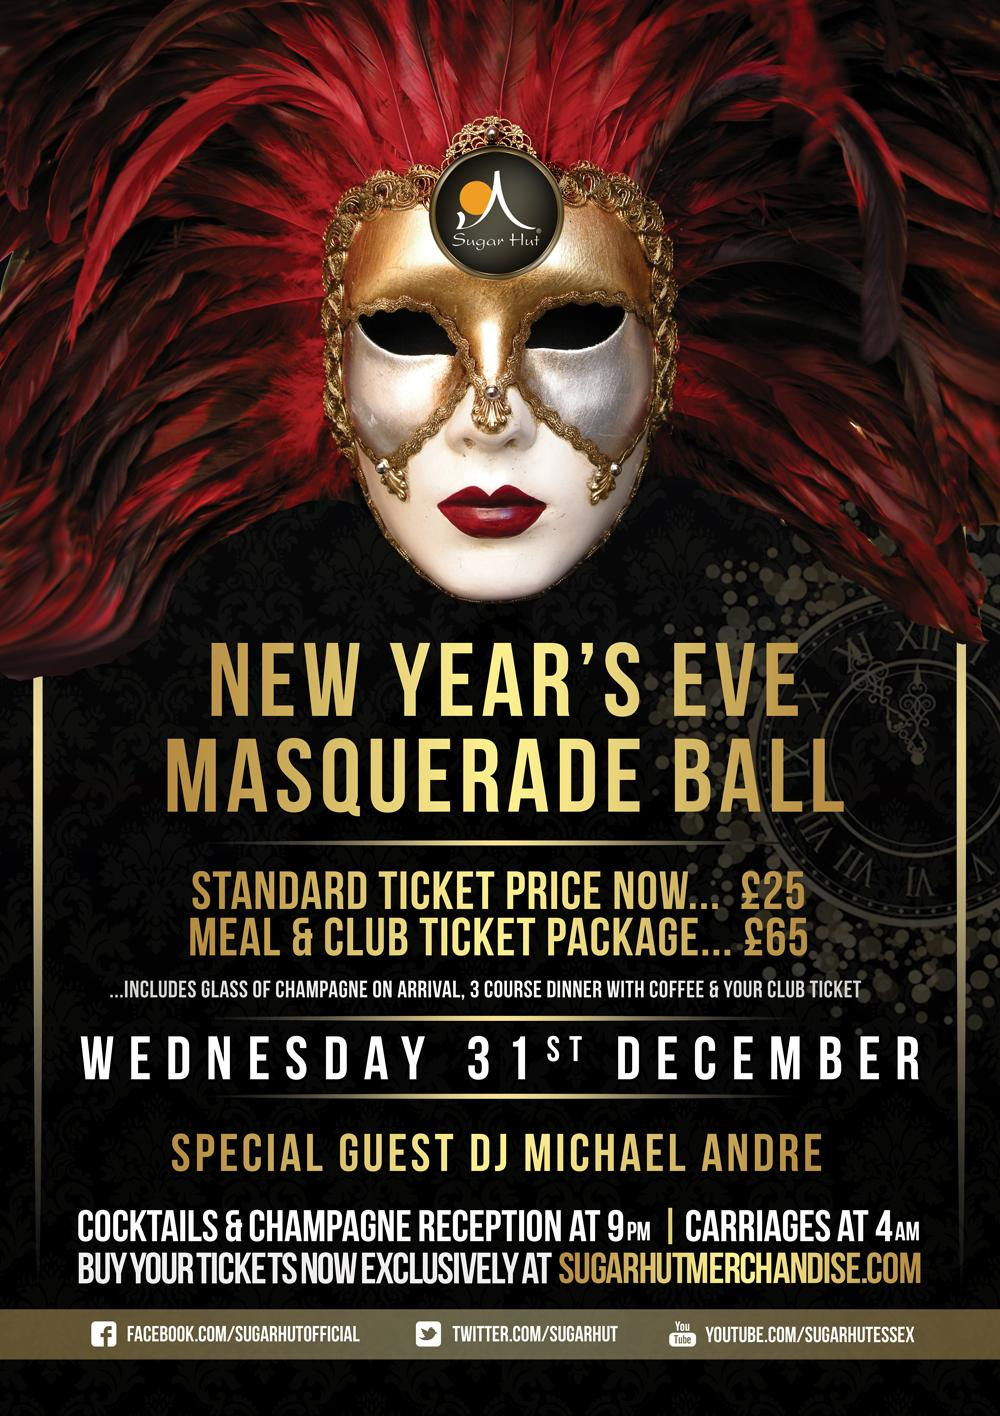 Our NYE Tickets are on Sale for £25 Call us on 01277 200885 to get yours. With @mrmichaelandre playing our main room. http://t.co/qLDZTJmUkh